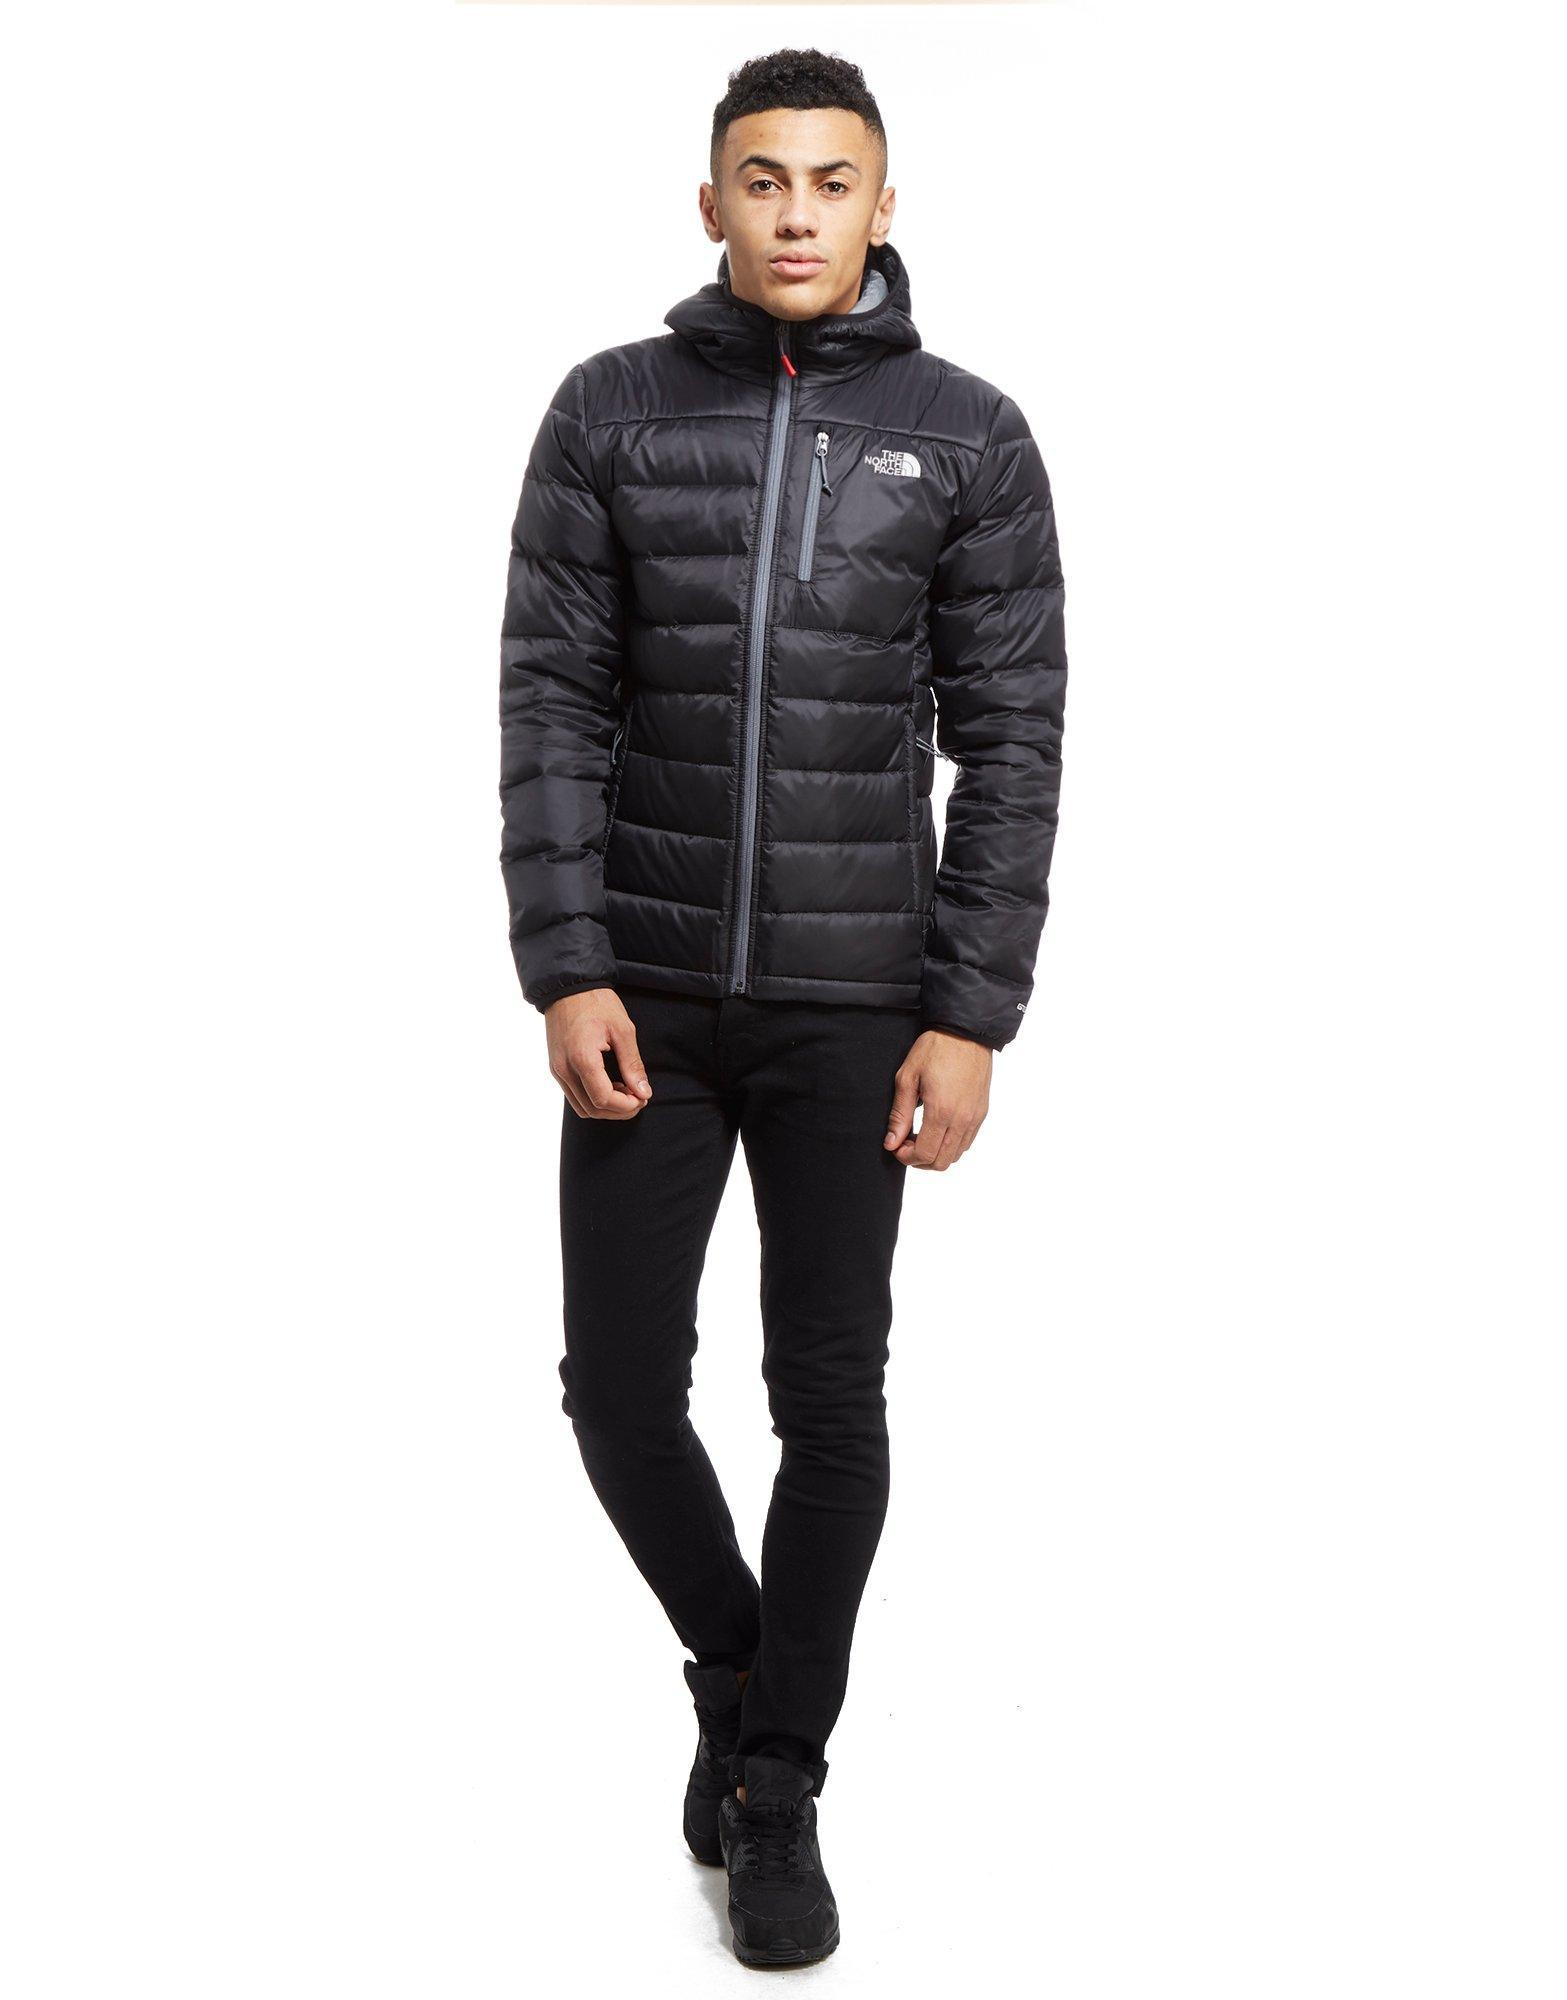 aefd6398bfc0 Lyst - The North Face Aconcagua Down Puffa Jacket in Black for Men